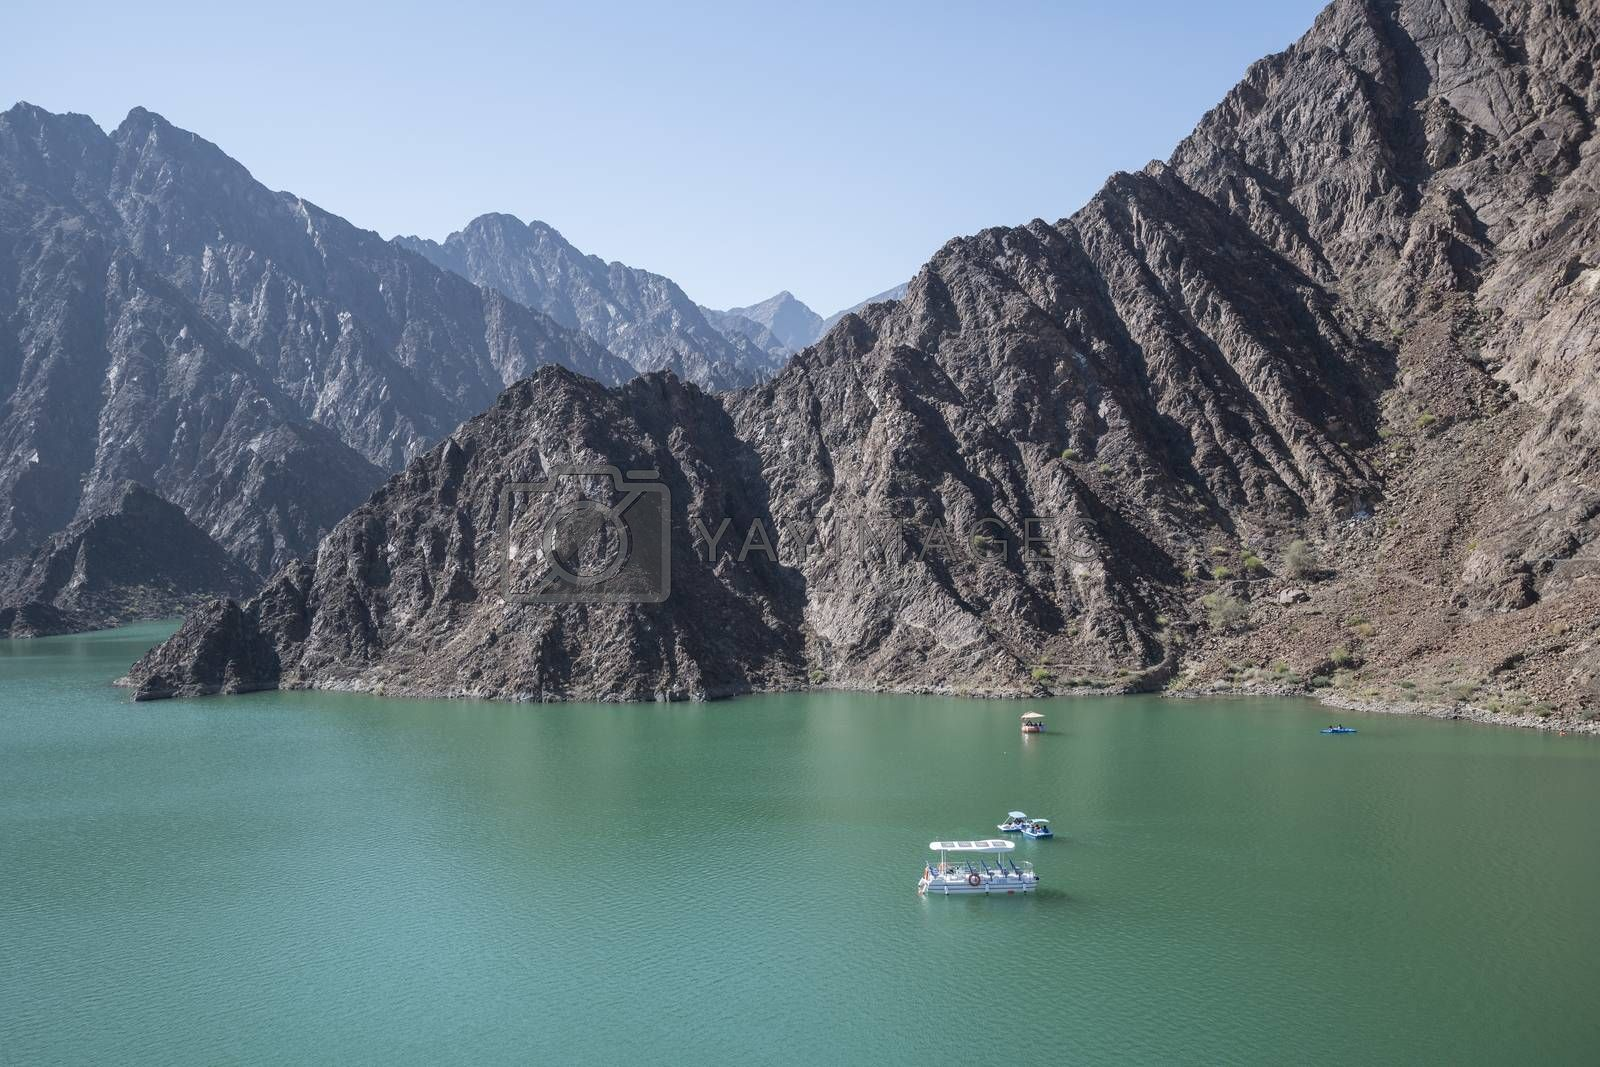 Hatta is the inland exclave of the emirate of Dubai in the UAE where people can enjoy kayaking and boating on the lake of Hatta Dam. United Arab Emirates